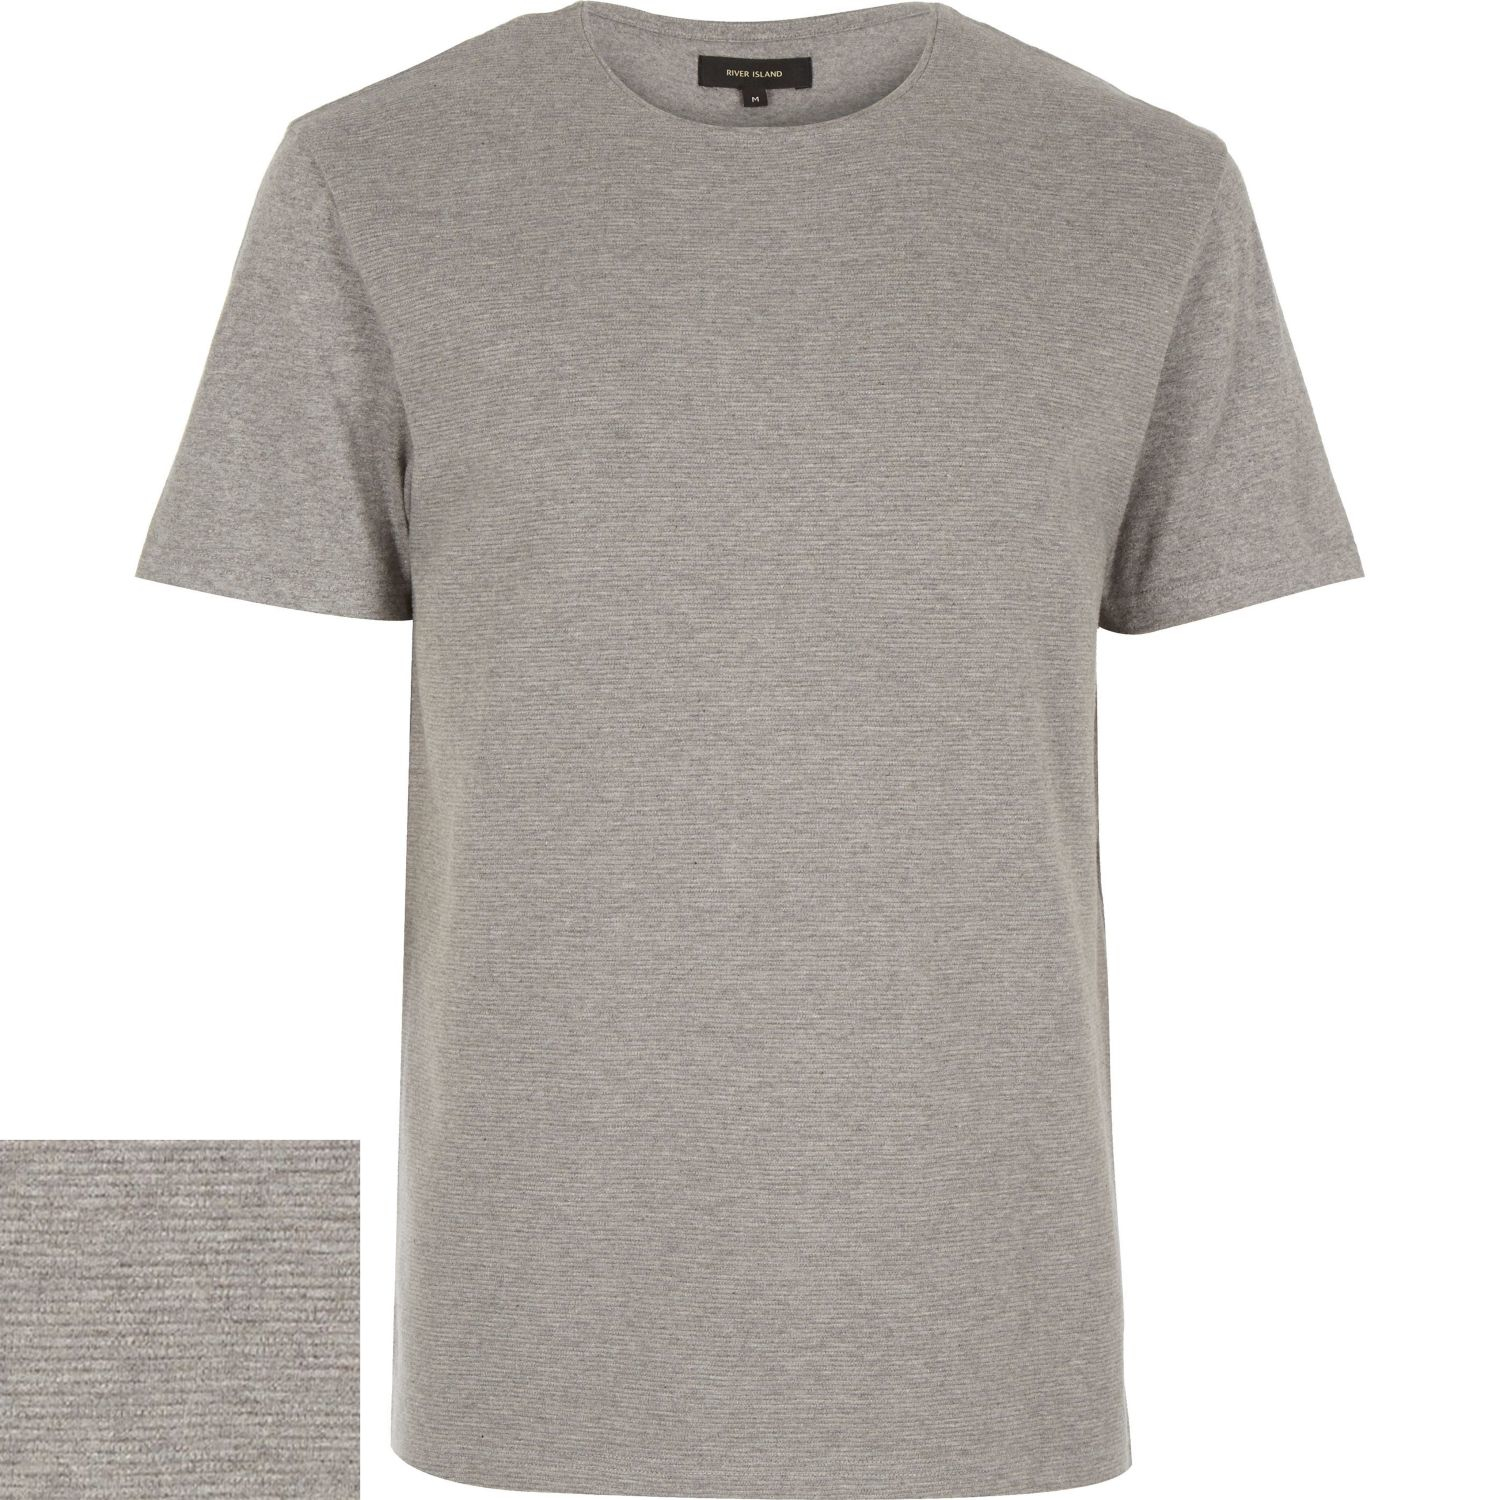 River island grey marl textured ribbed t shirt in gray for for Grey marl t shirt